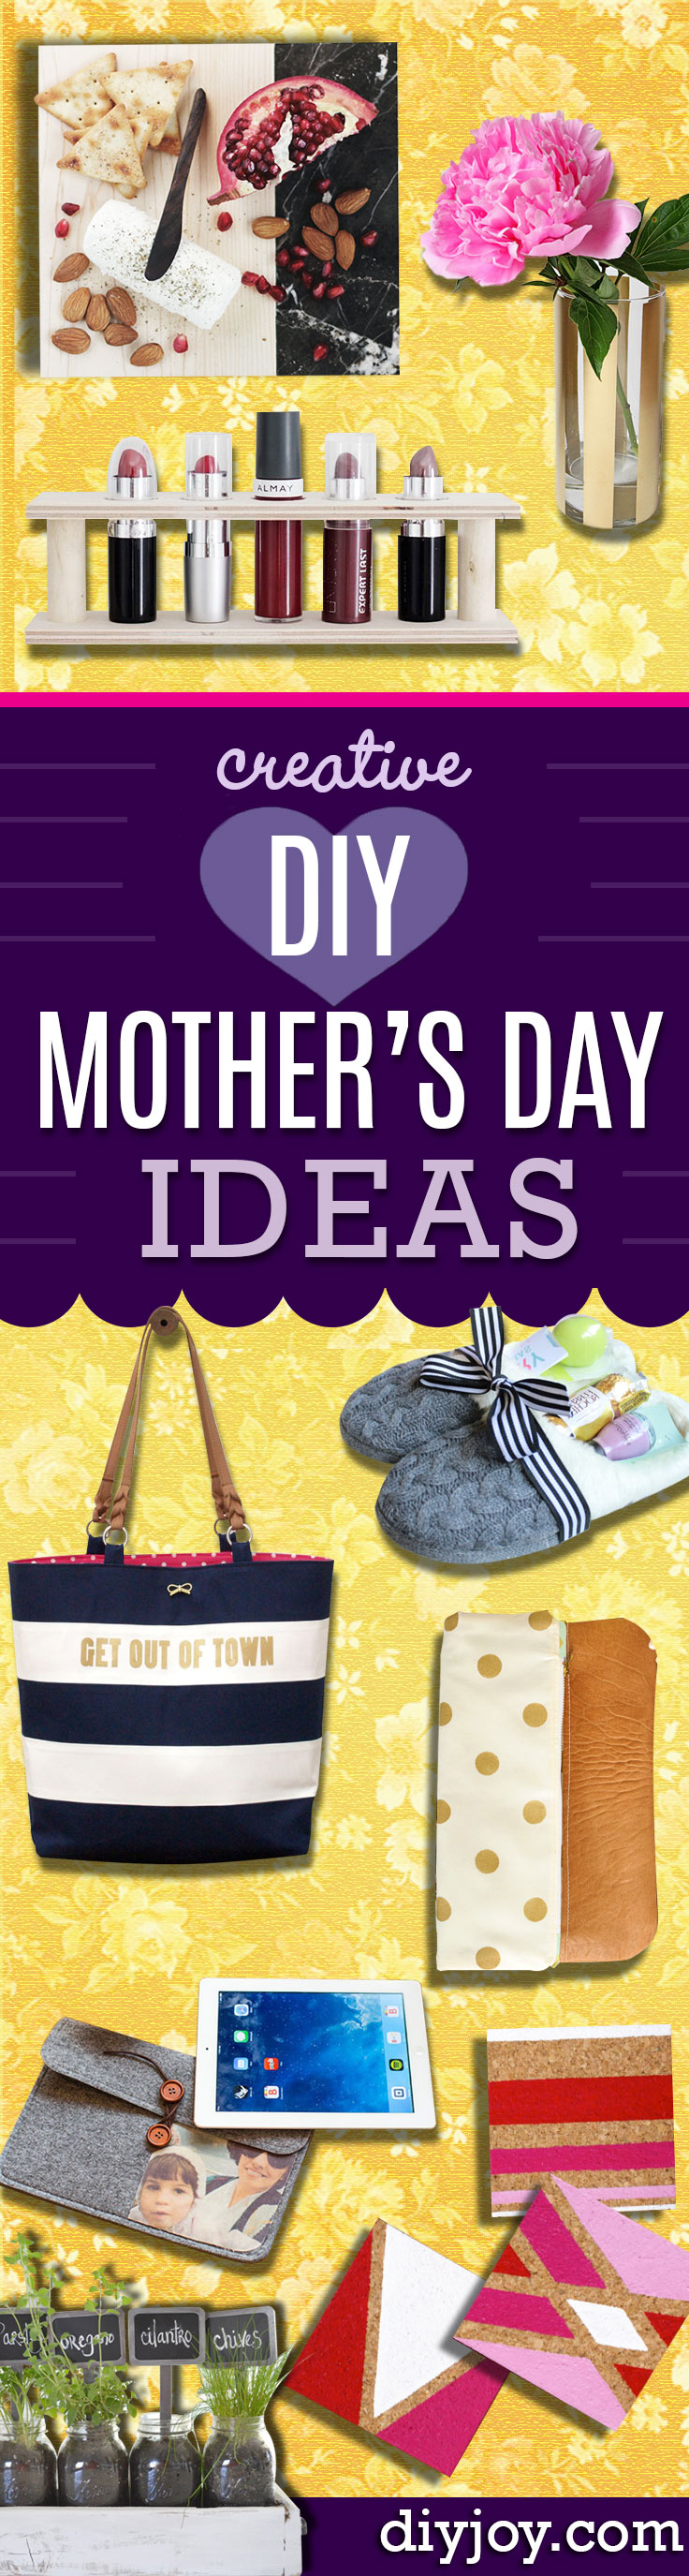 Creative Diy Mothers Day Gifts Ideas Thoughtful Homemade Gifts For